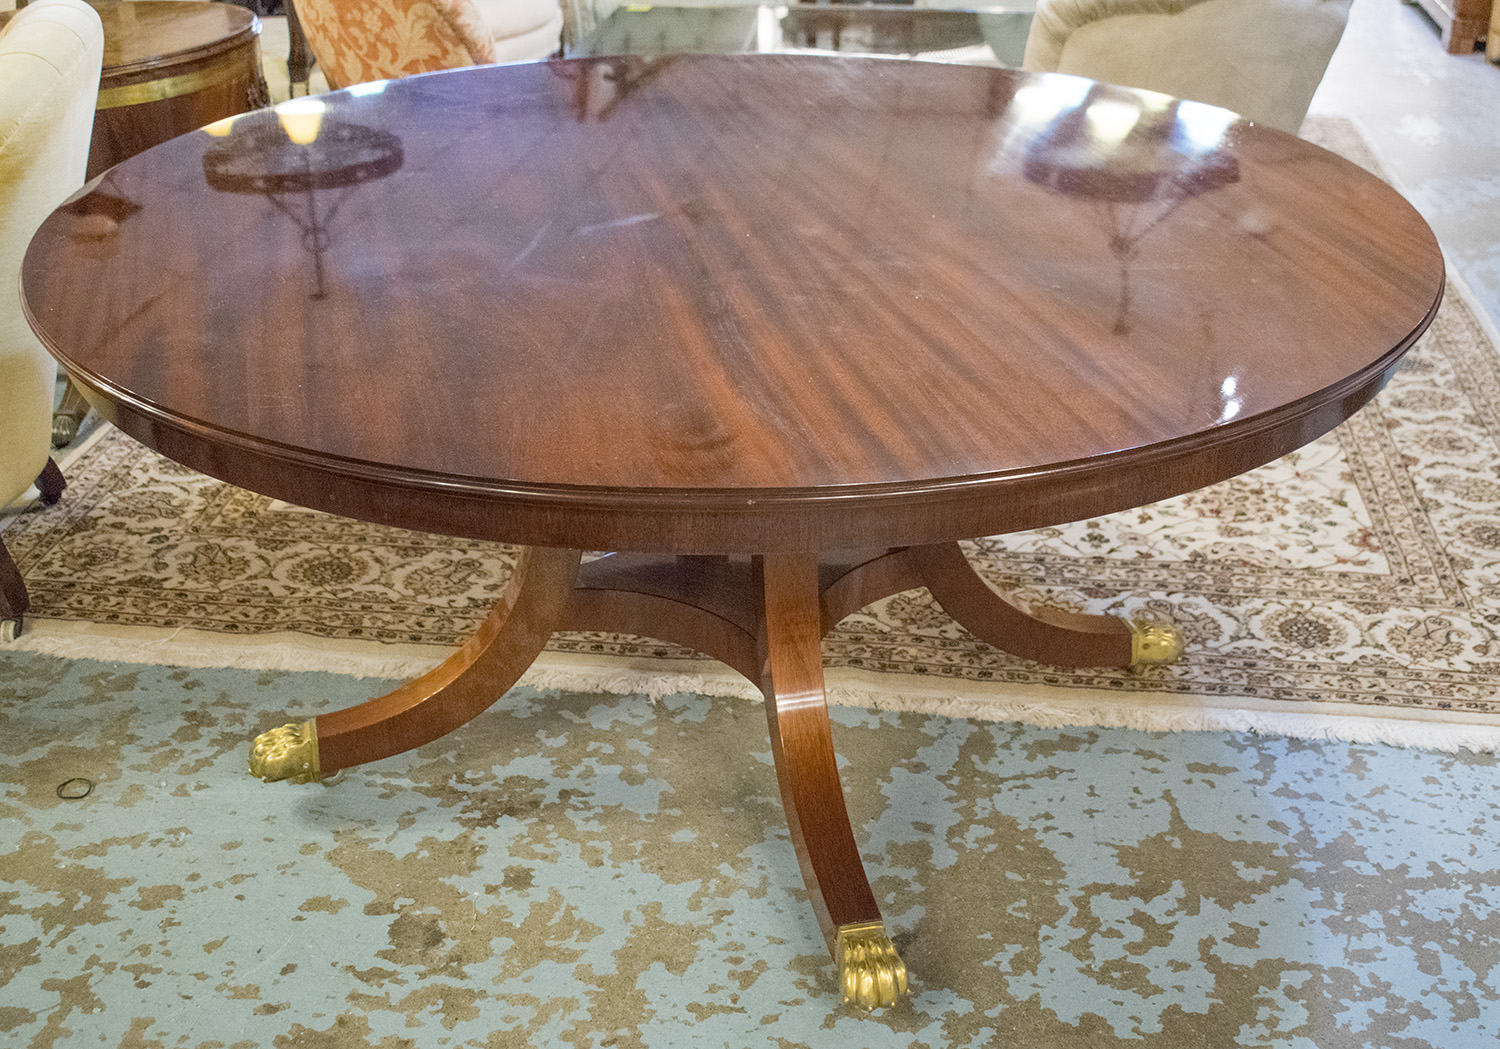 Extending Circular Dining Table Regency Style Figured Mahogany Jupe Leaves And Splay Supports 72cm H X 158cm D 230cm Extended